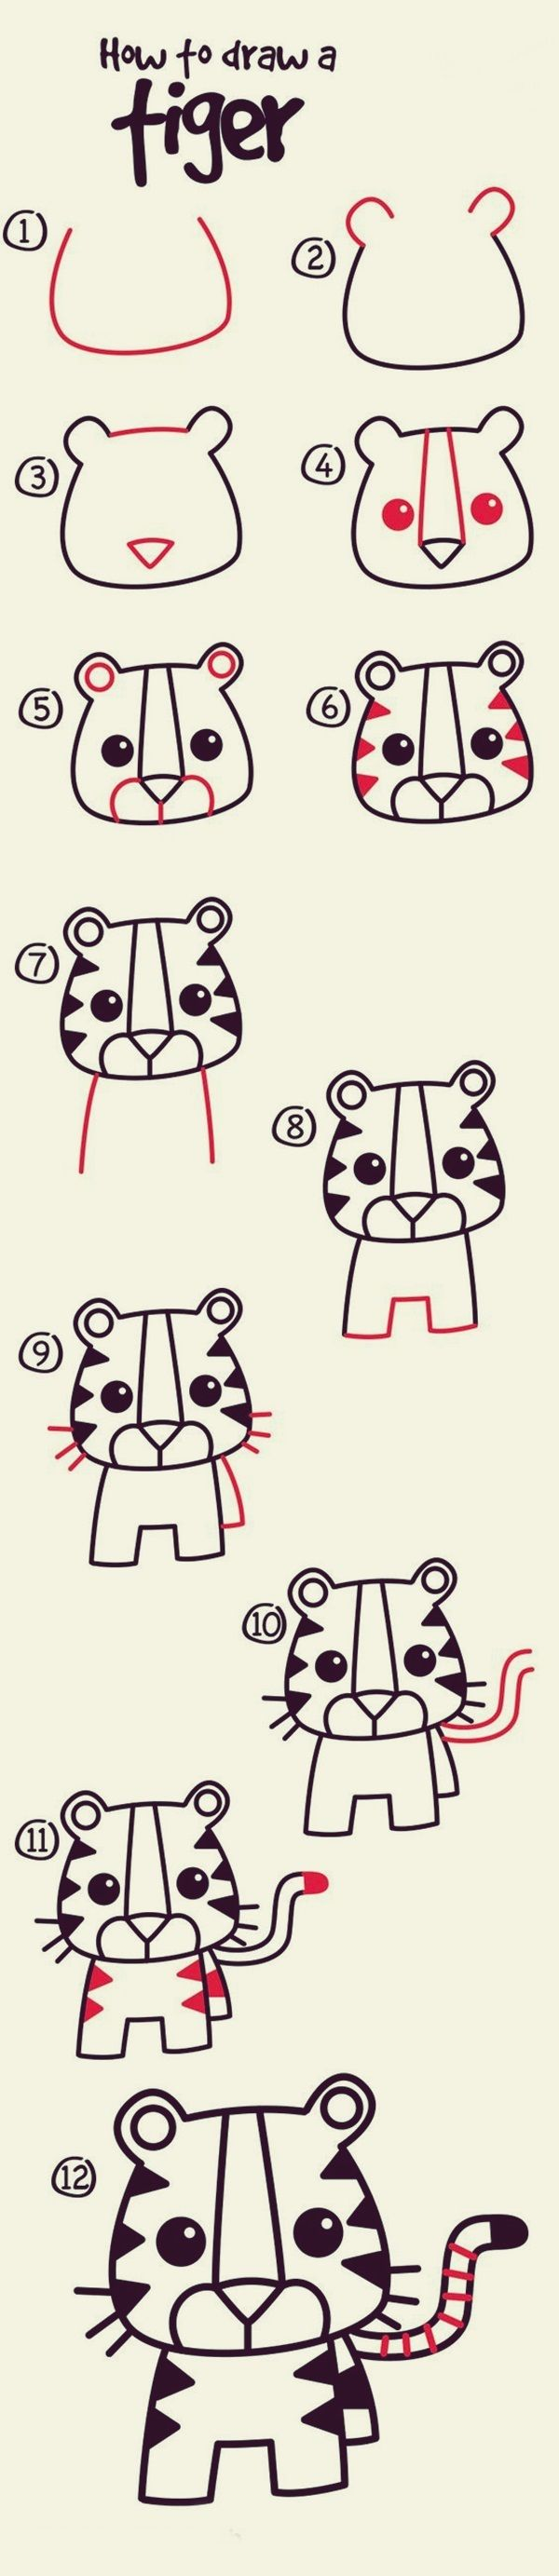 How to draw cute animals 40 examples